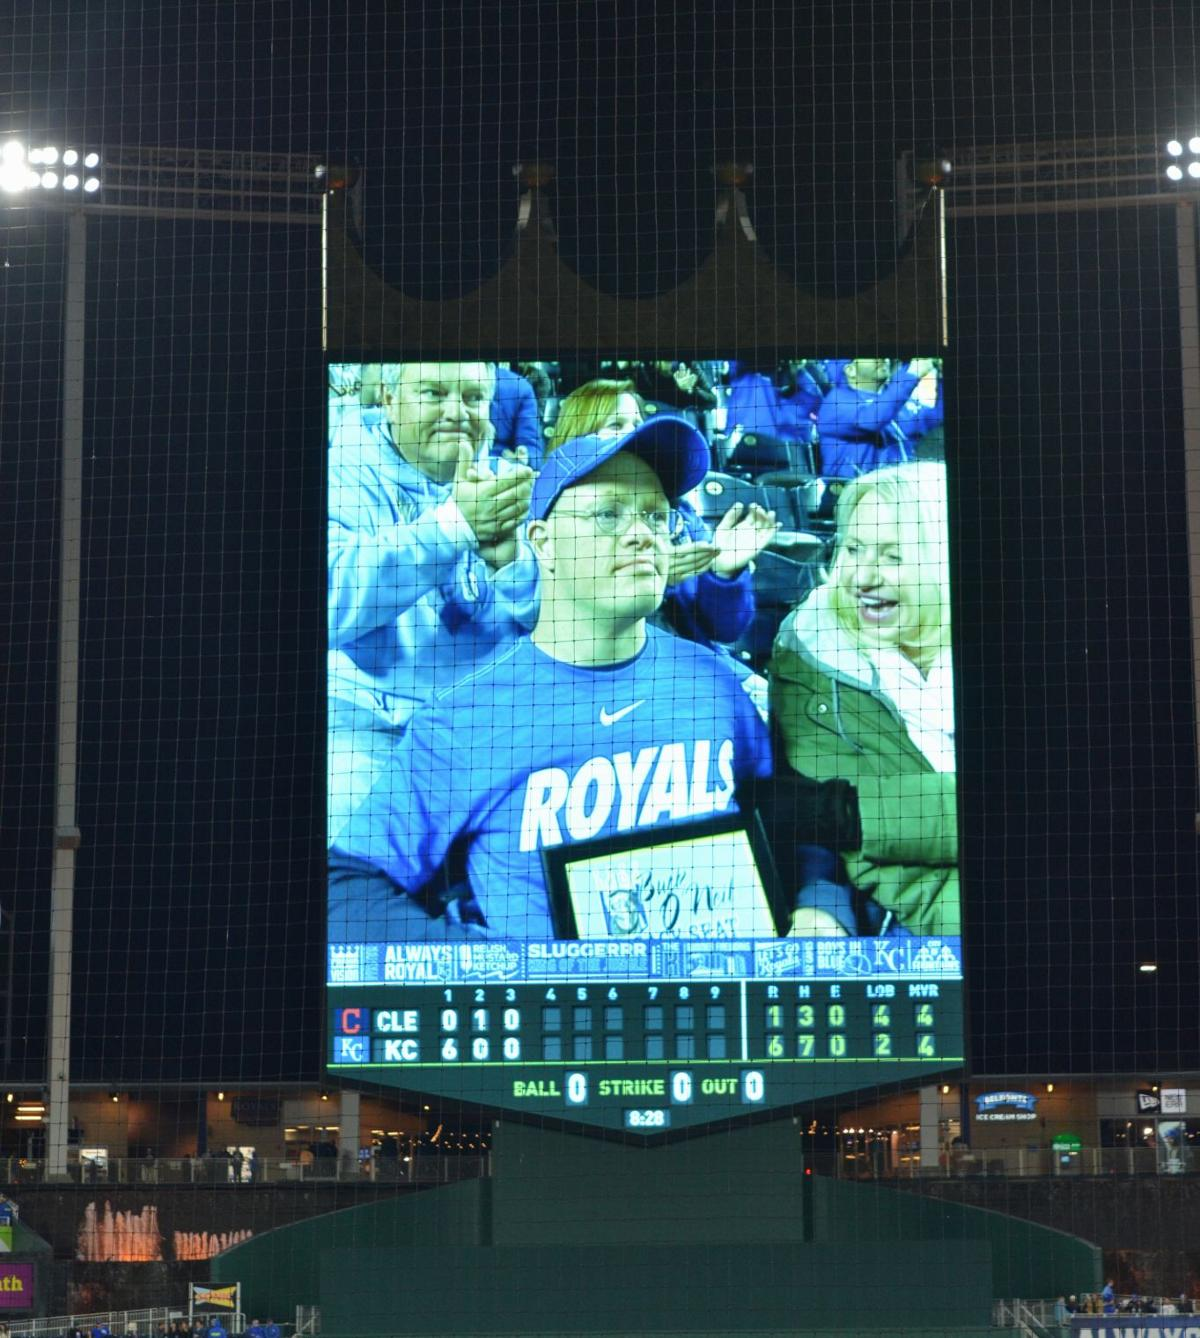 Louisburg business owner honored at Royals game